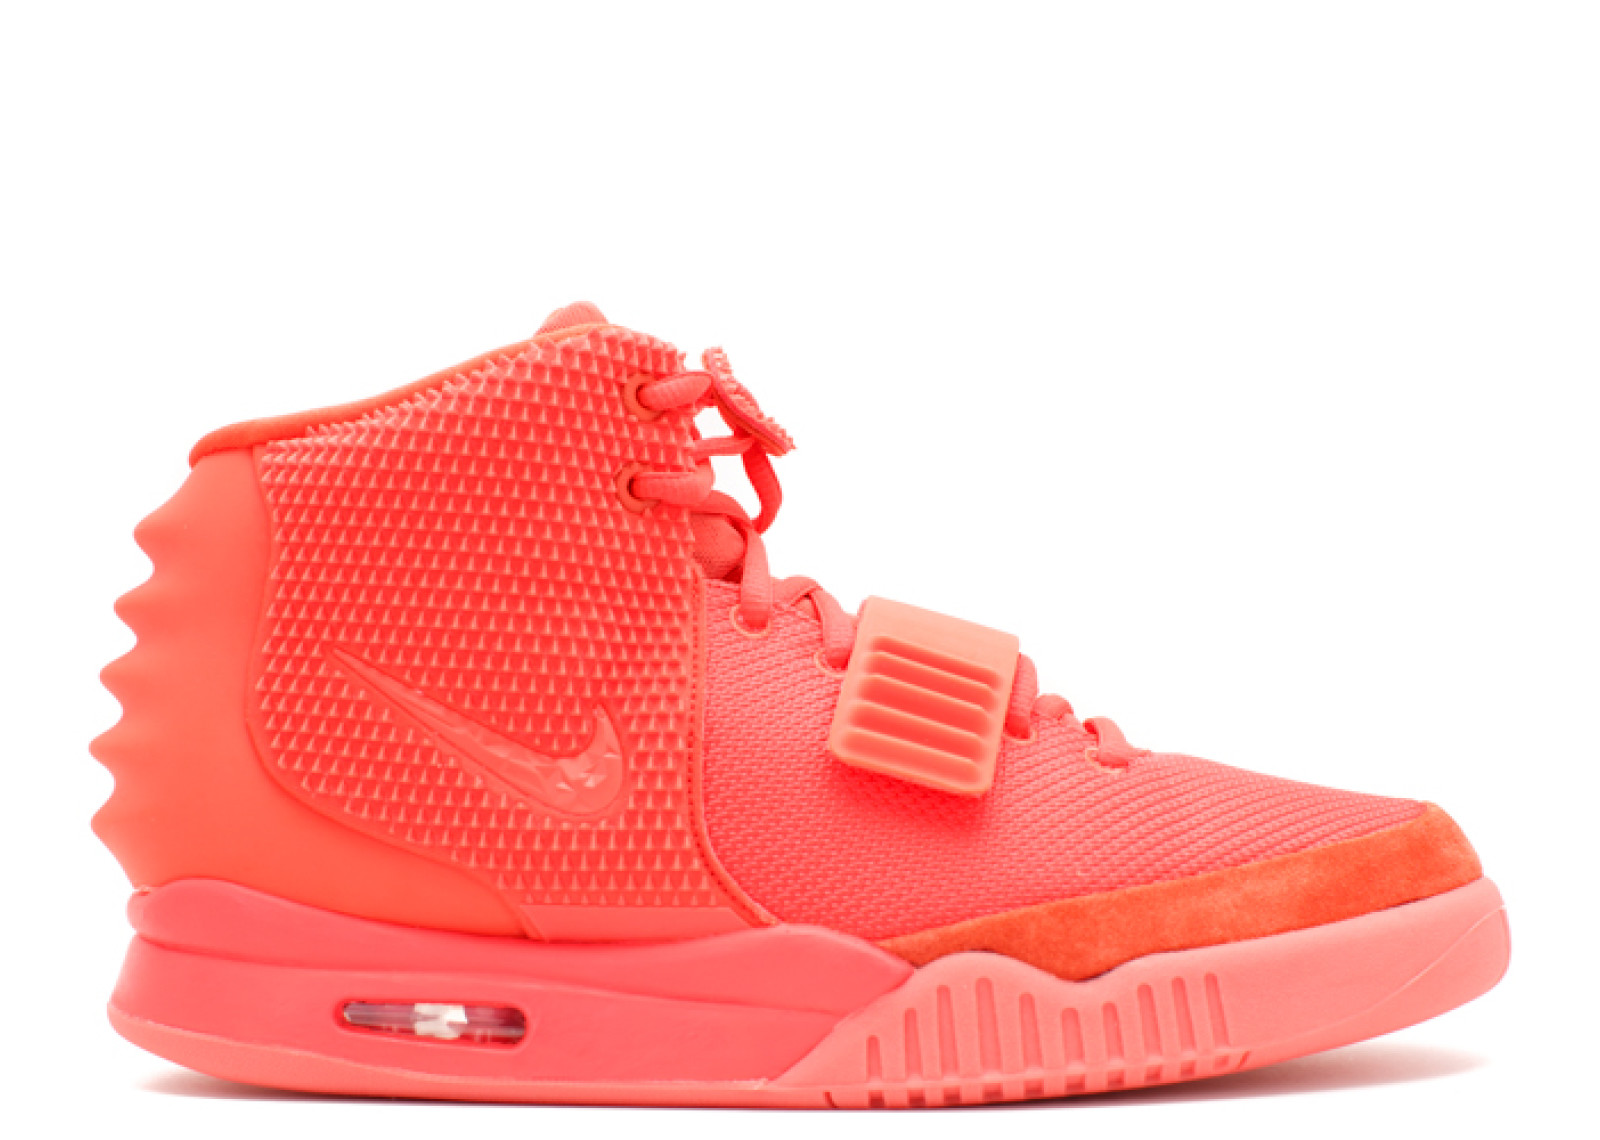 best sneakers 8b4ea 40e91 ... coupon code for nike air yeezy 2 sp red october 508214 660 walmart  53ac4 0e845